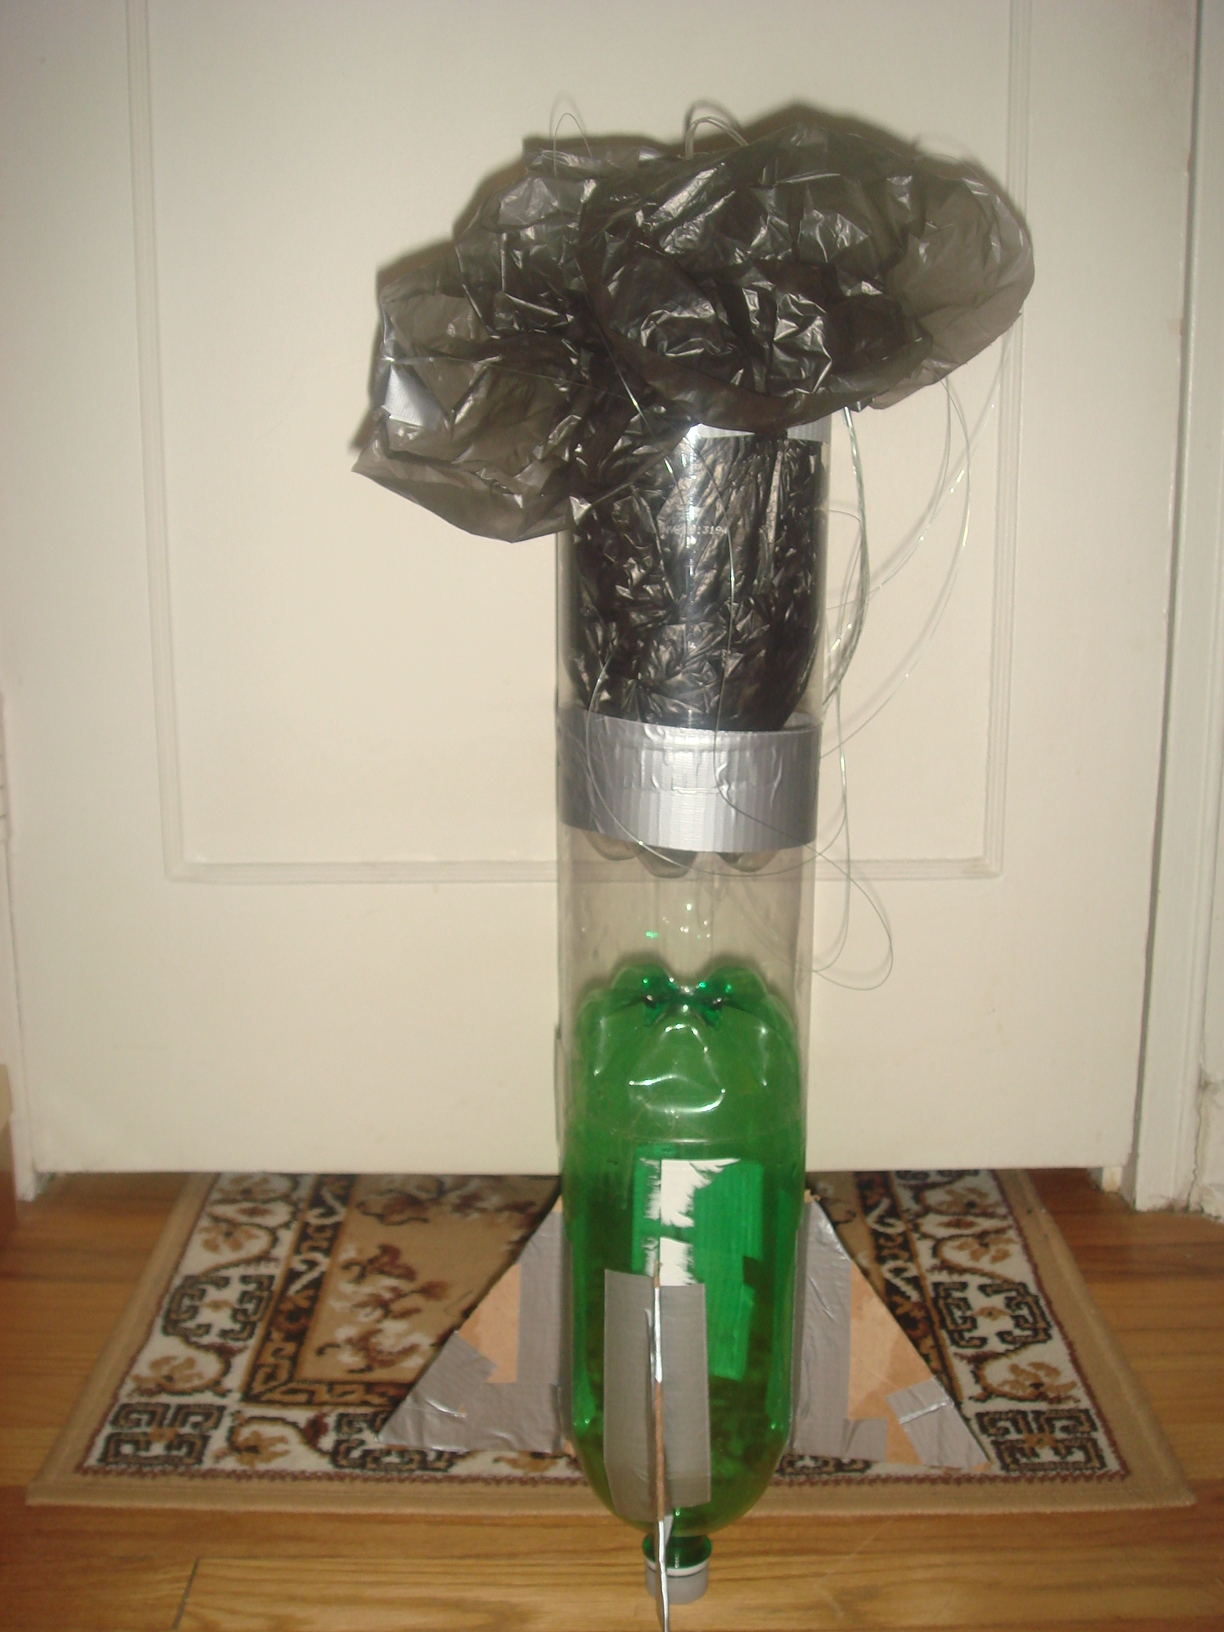 How to make a water rocket?